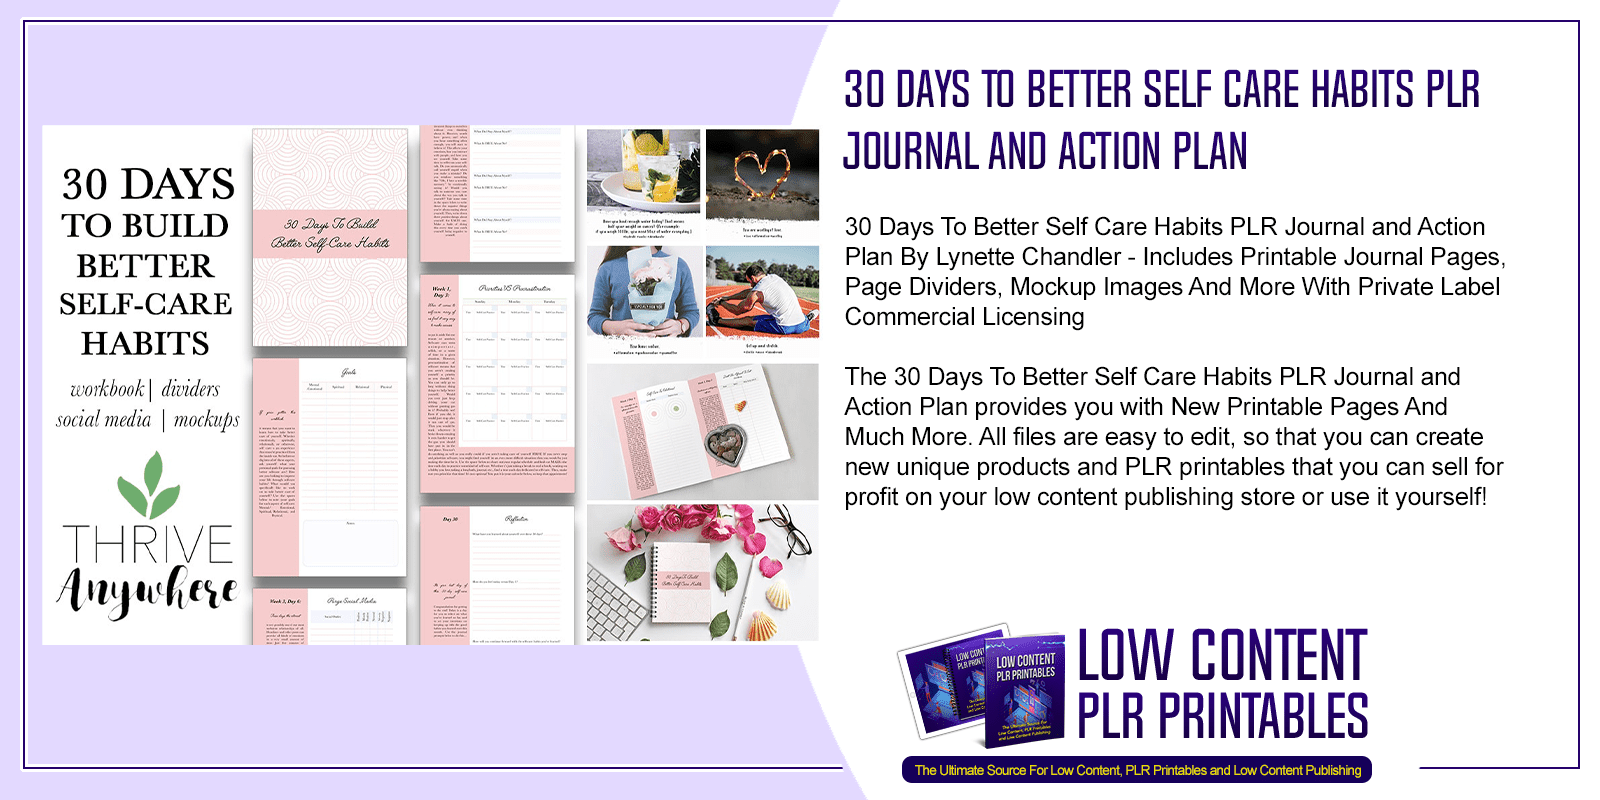 30 Days To Better Self Care Habits PLR Journal and Action Plan